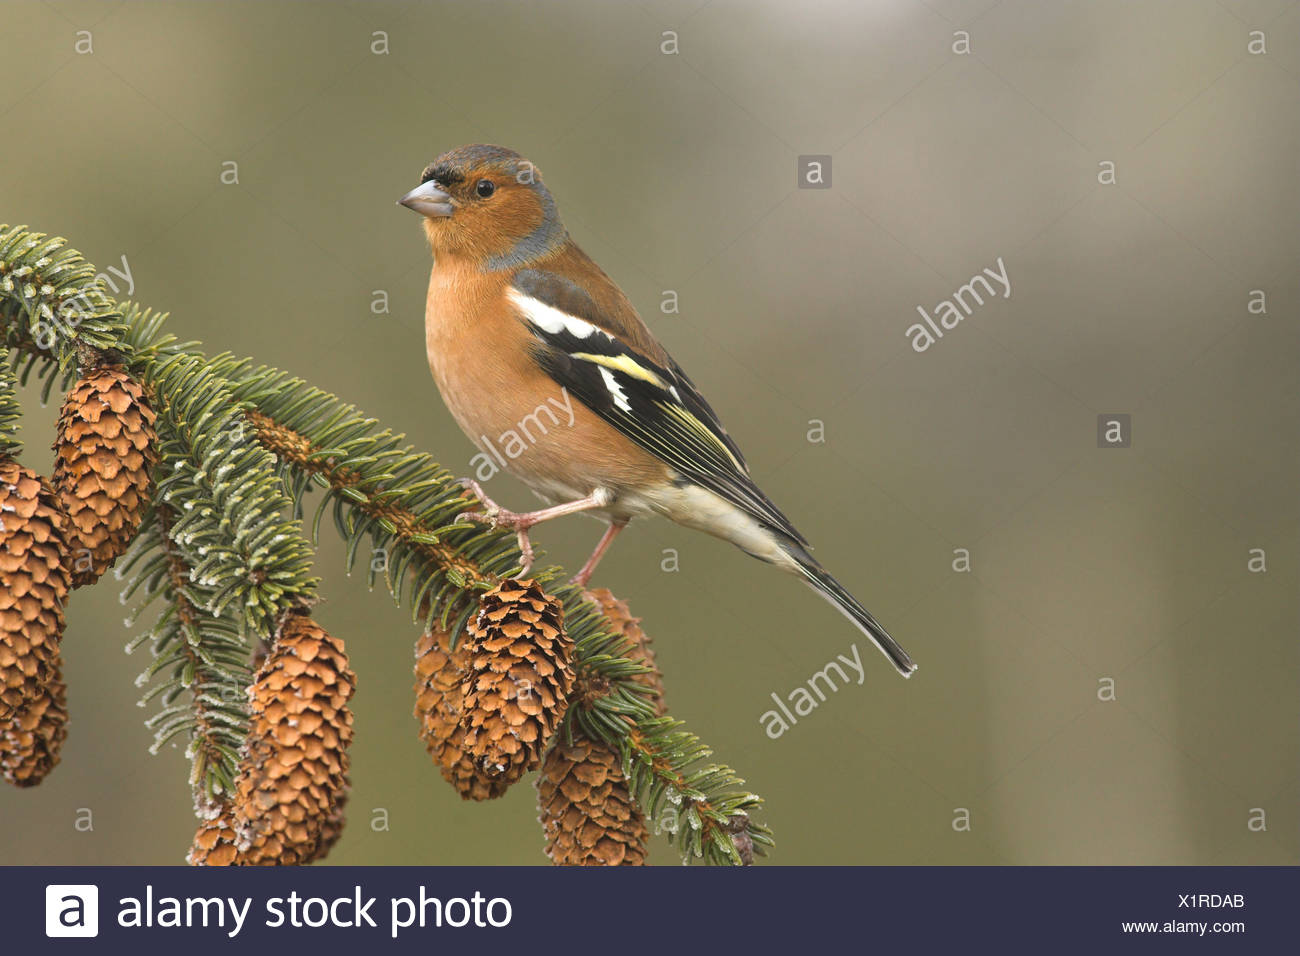 Chaffinch (Fringilla coelebs) adult male, perched on Sitka Spruce (Picea sitchensis) twig with cones, Borders, Scotland, winter - Stock Image